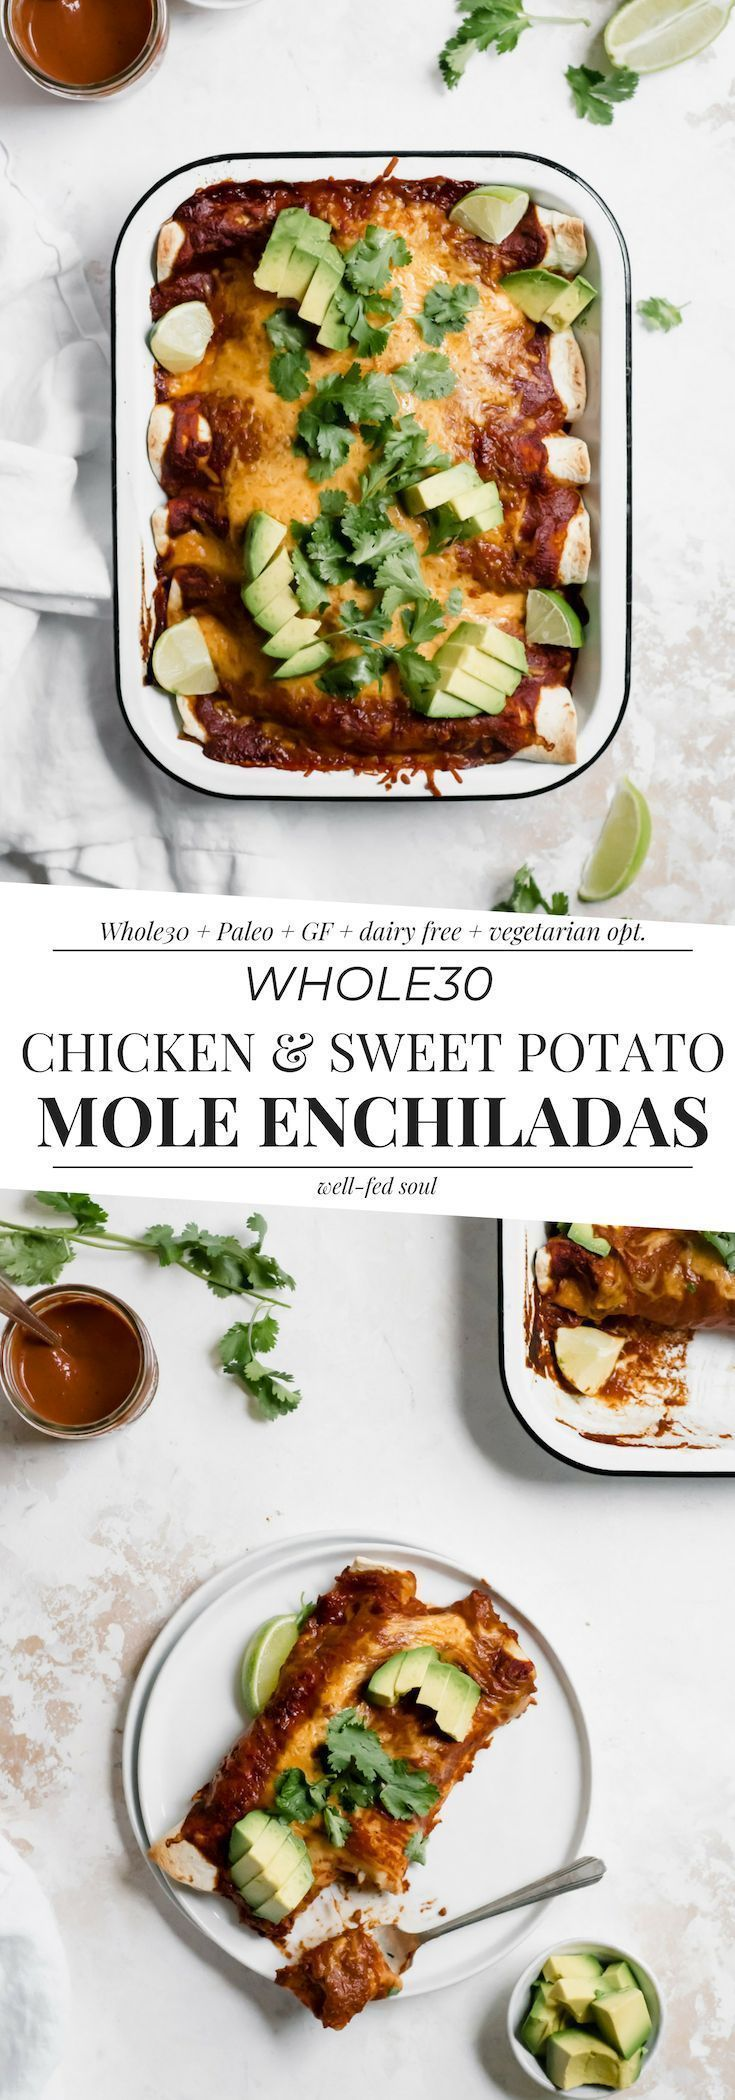 Chicken & Sweet Potato Mole Enchiladas images